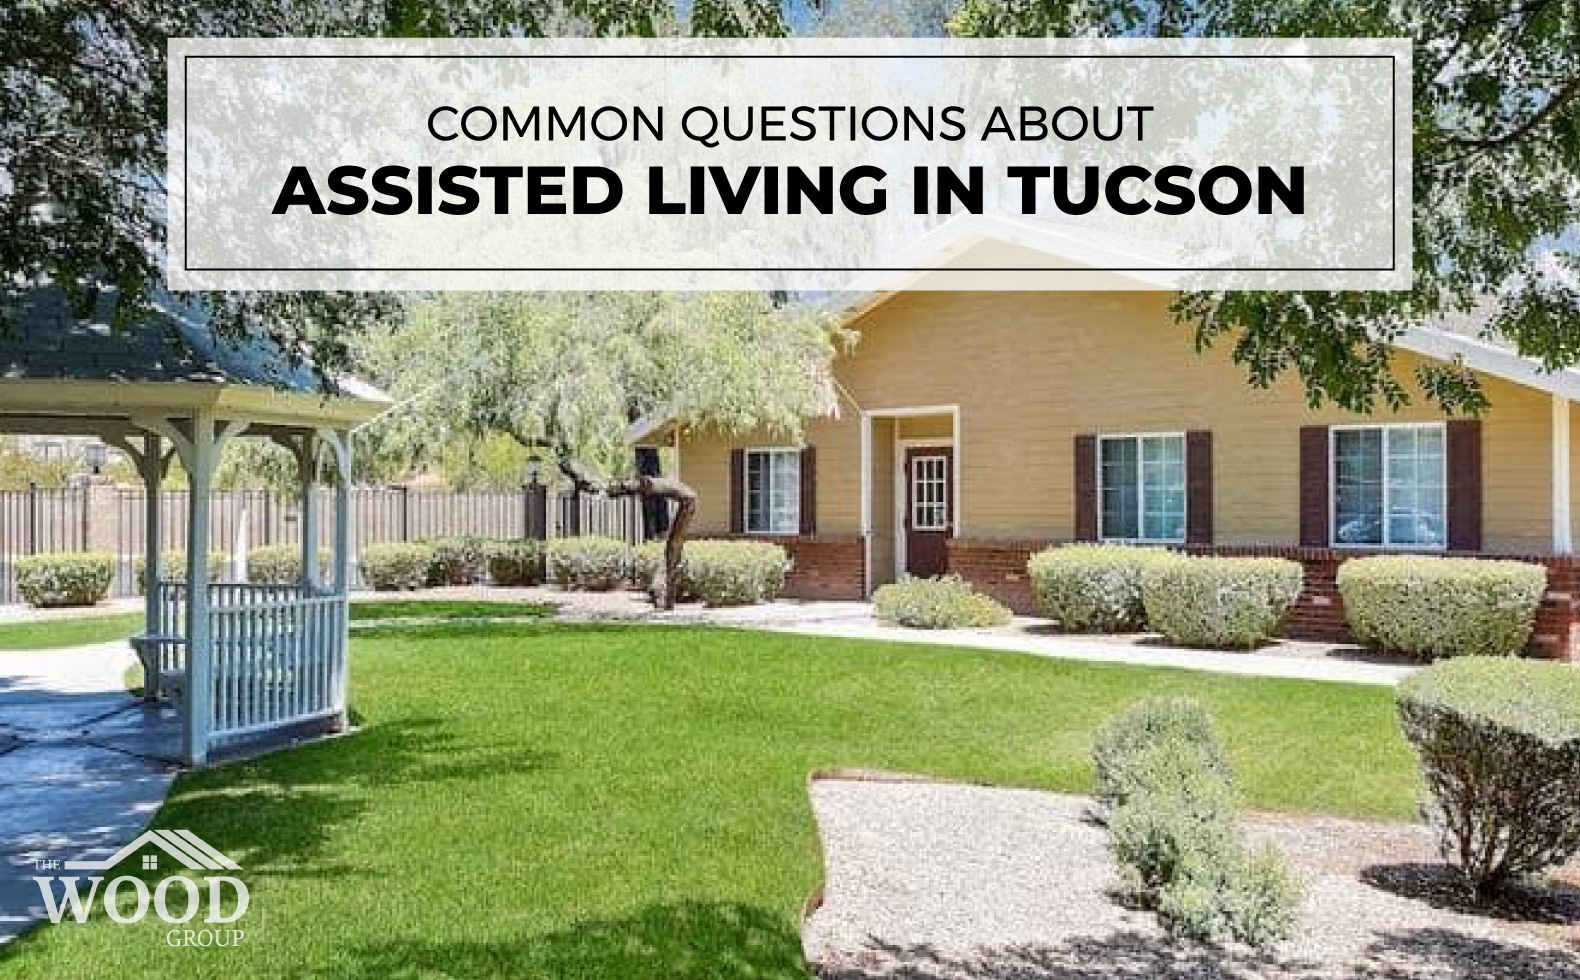 Common Questions About Assisted Living in Tucson